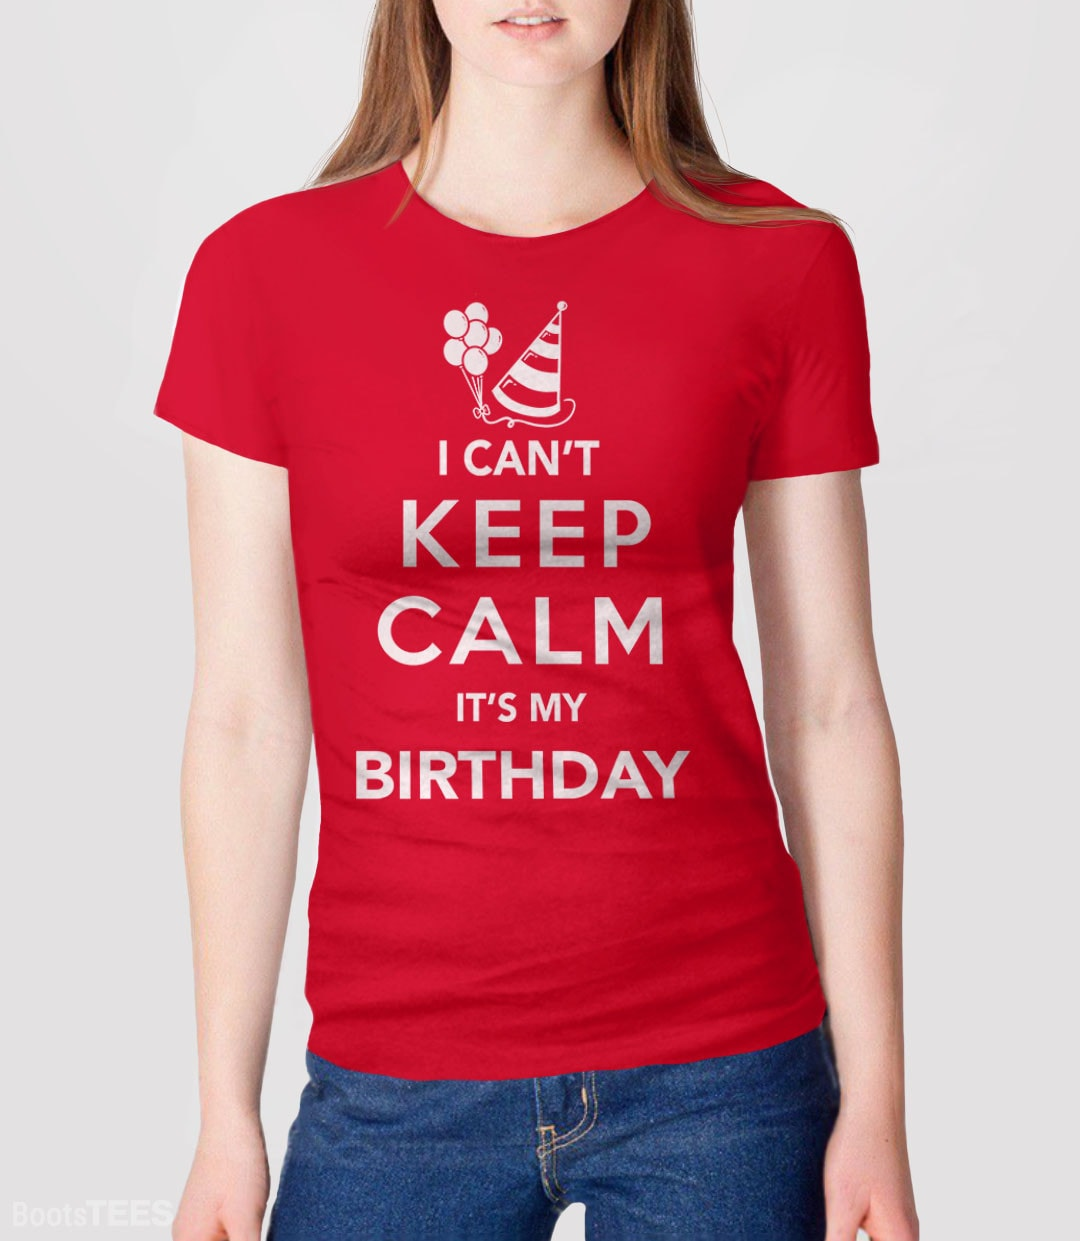 It's my Birthday, Red Womens Tee by BootsTees